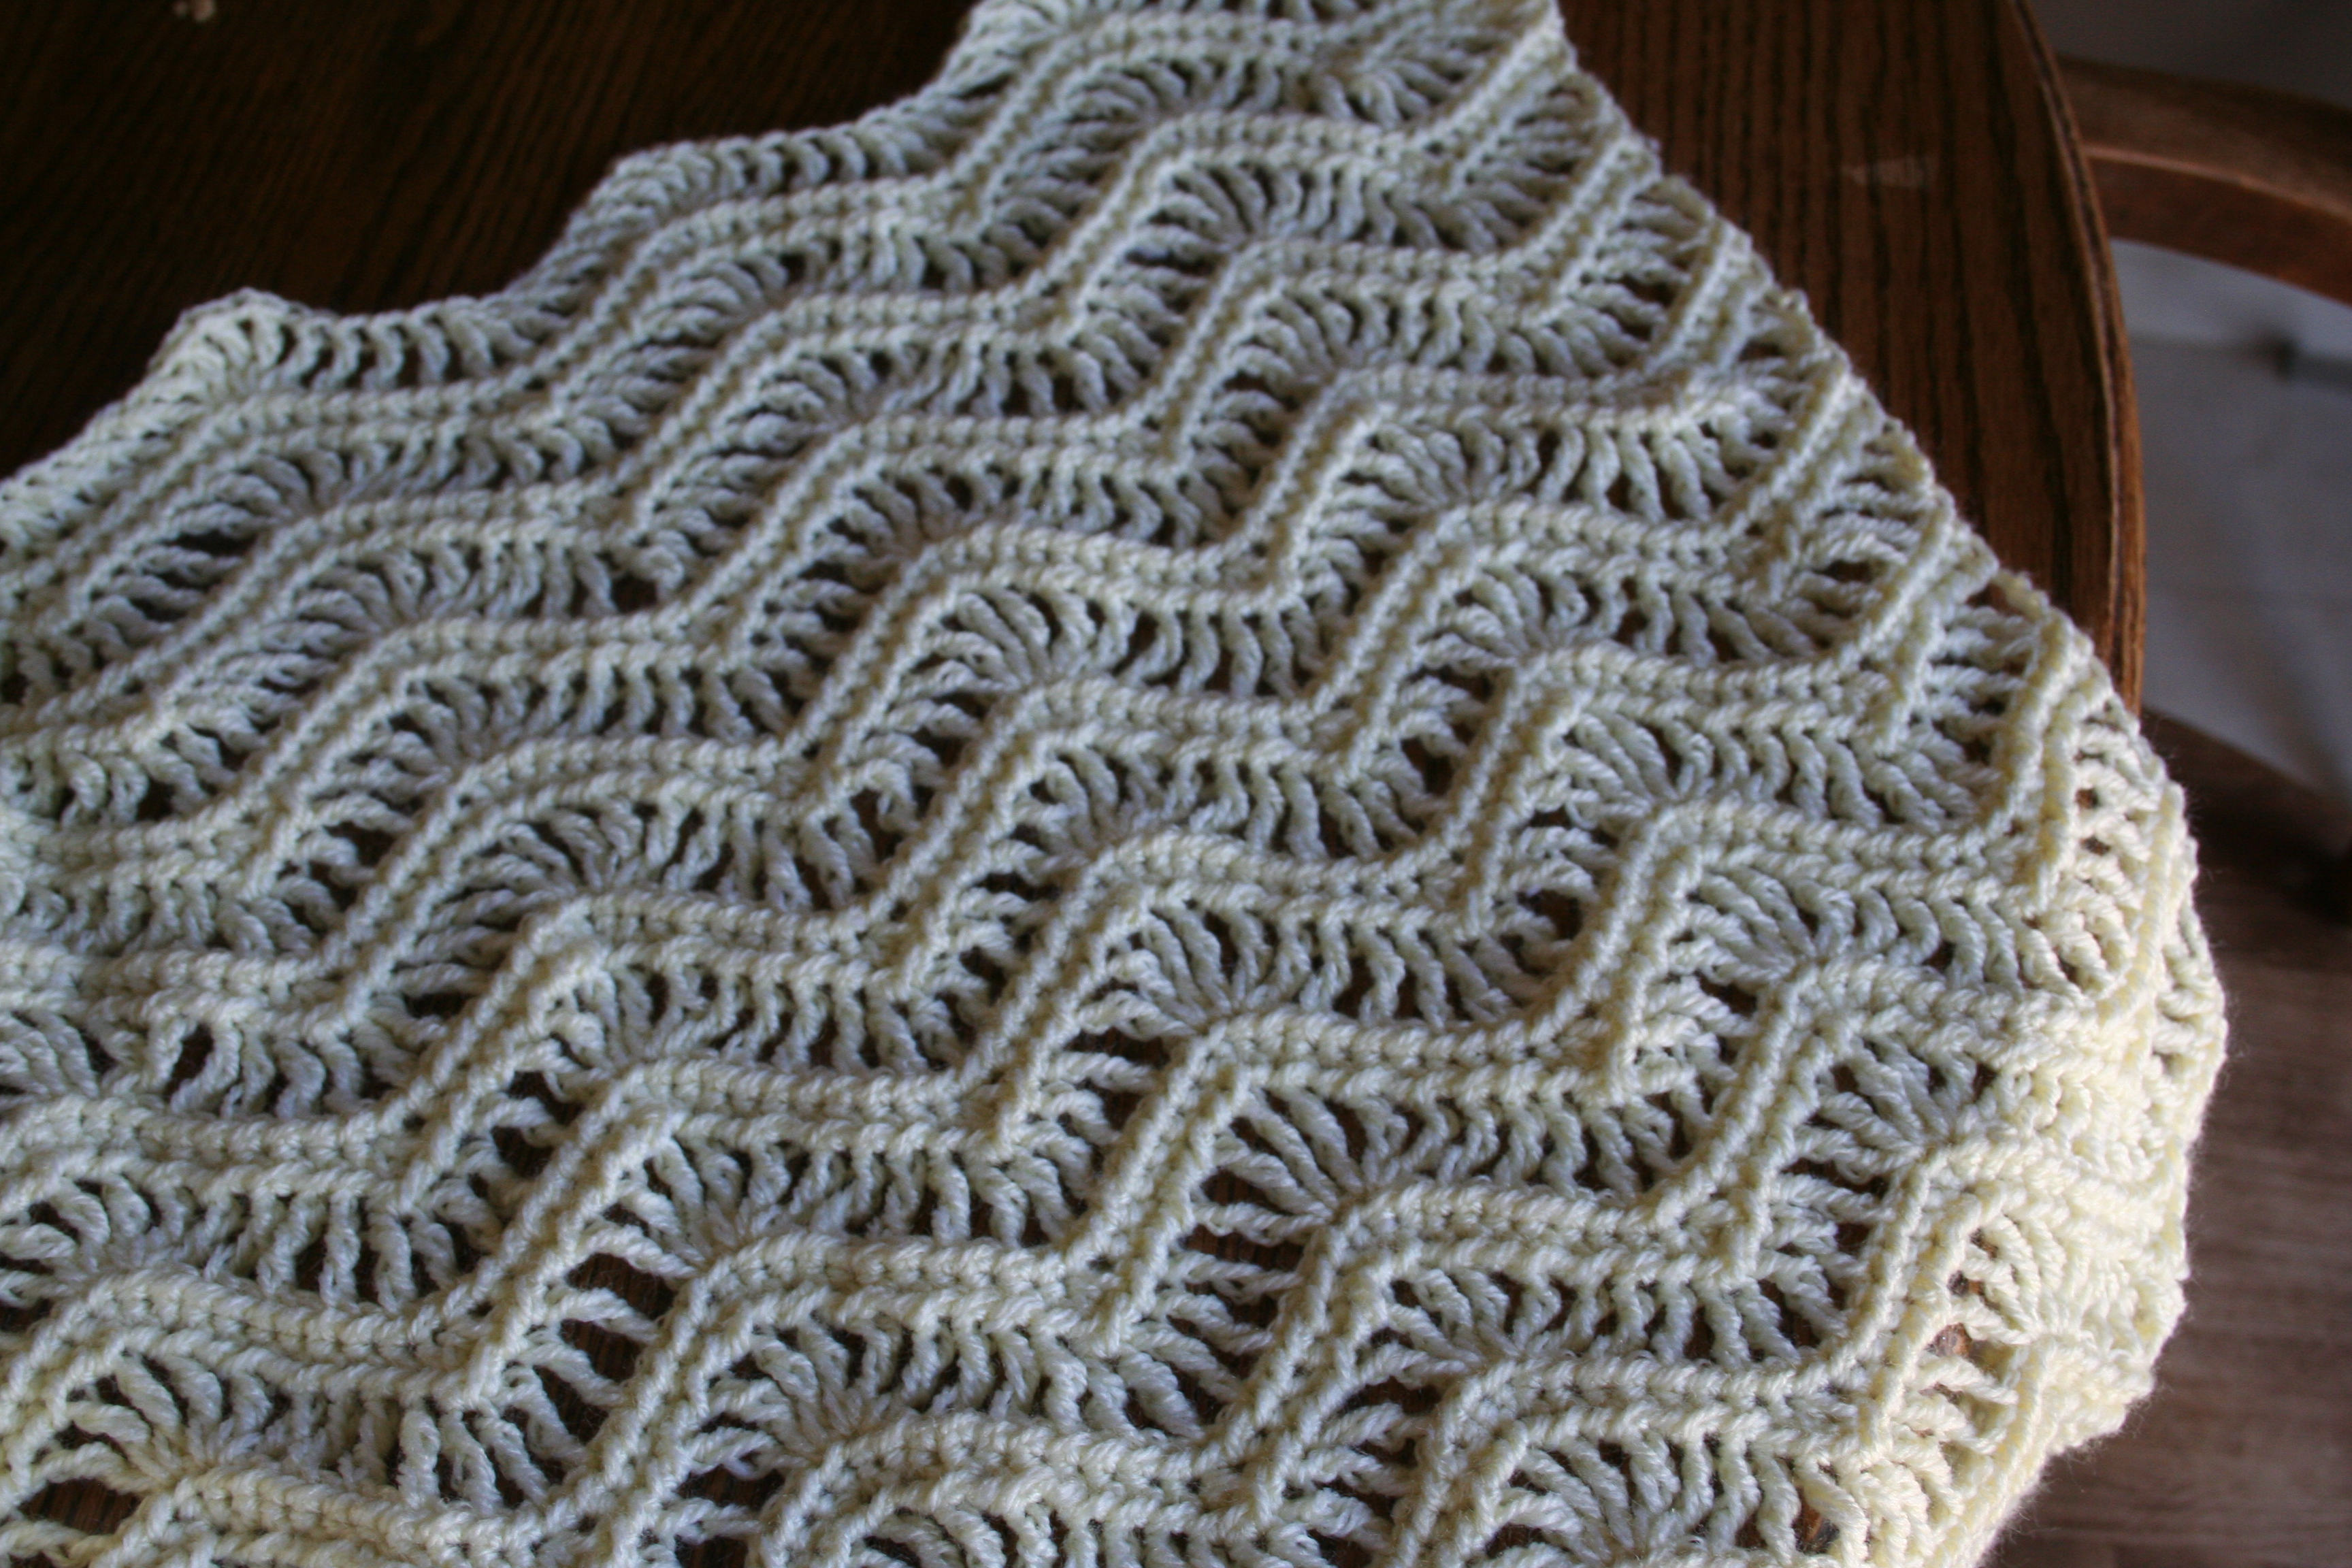 This Blanket Had To Be One Of My Favorites I Was Fun To Learn New Stitches  And Figure Out How To Do A Zig Zag Pattern